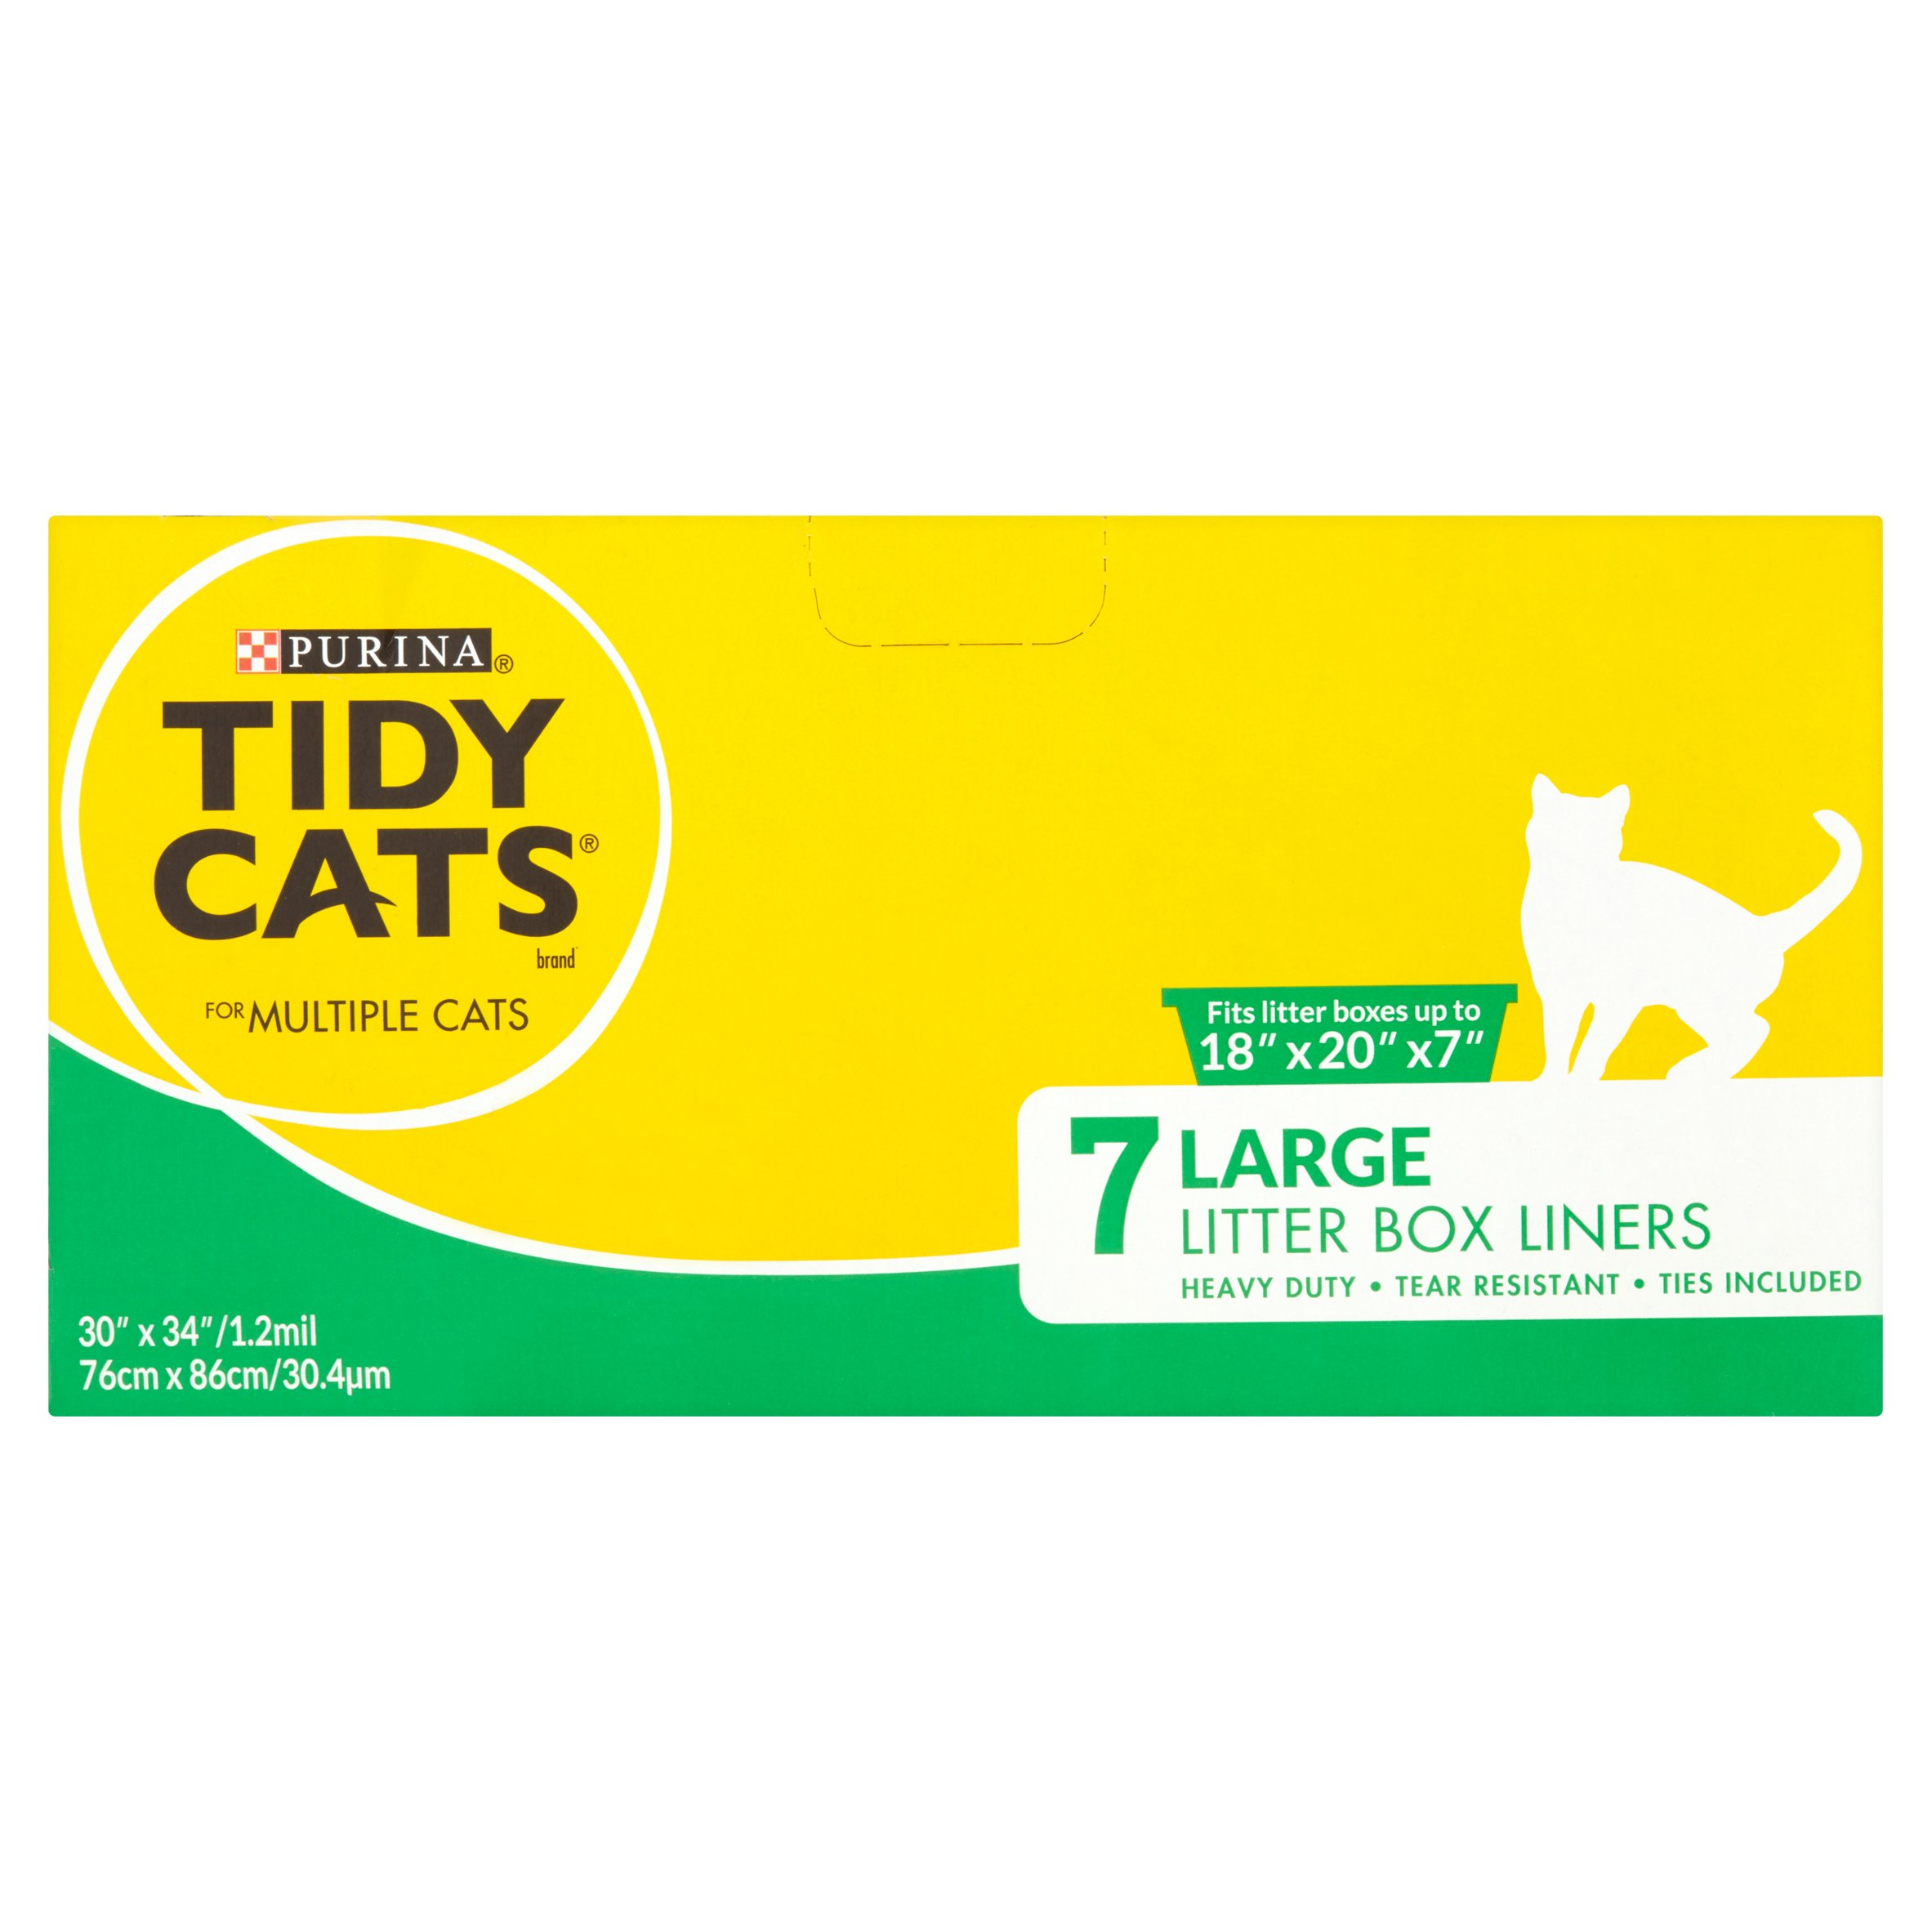 Purina Tidy Cats Large Litter Box Liners For Multiple Cats